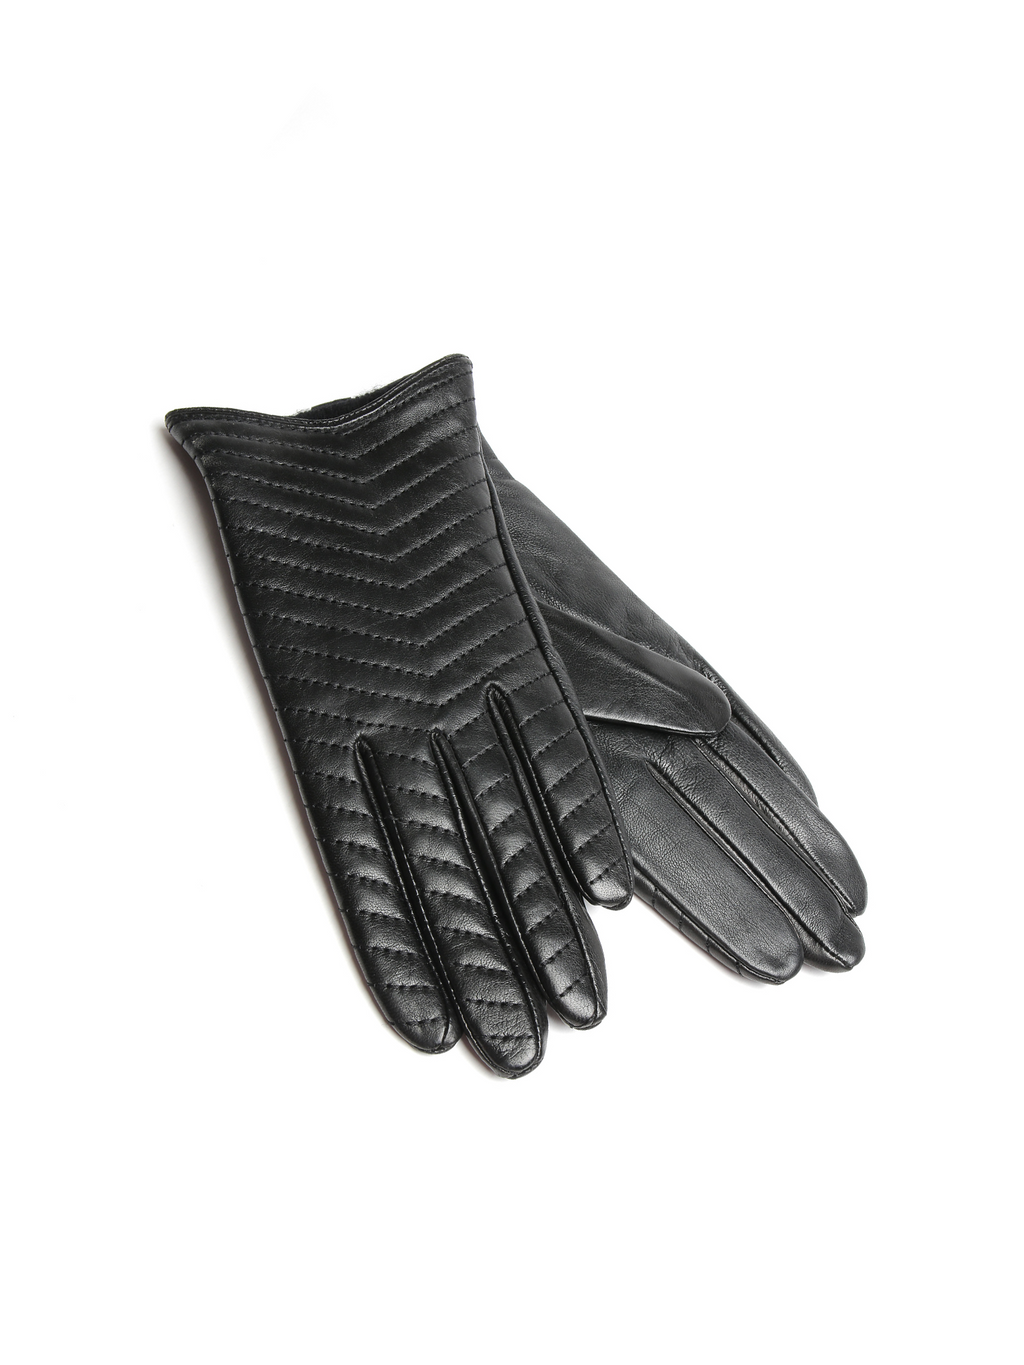 Mackage Cano Gloves